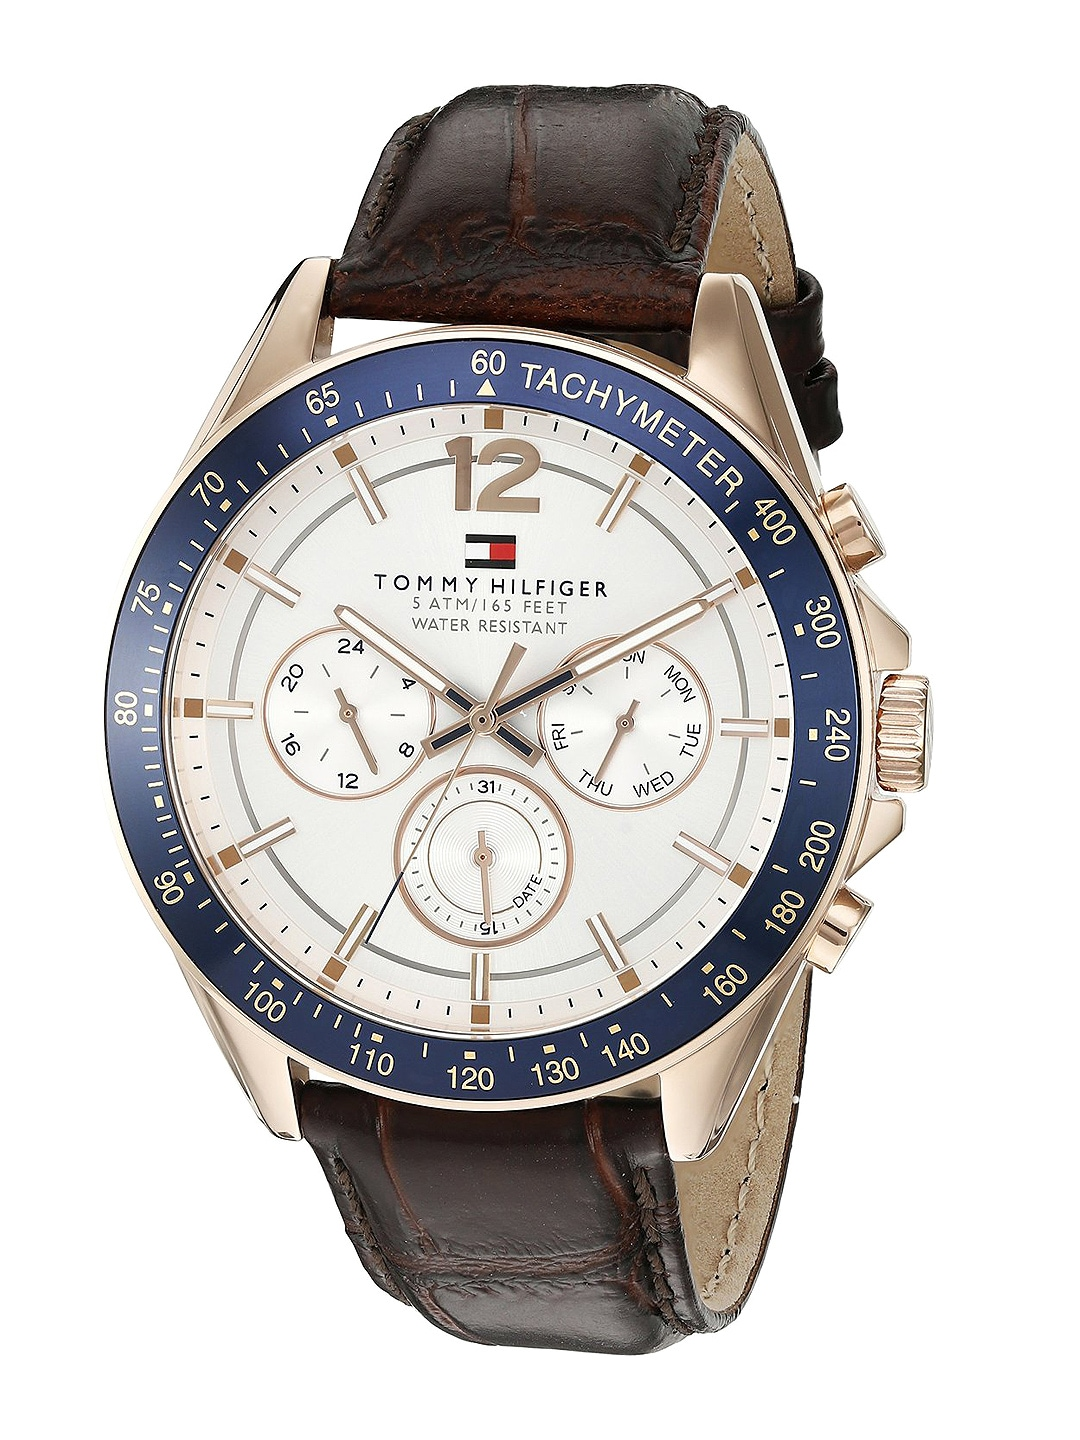 Tommy Hilfiger Men Off-White Dial Chronograph Watch TH1791118J image